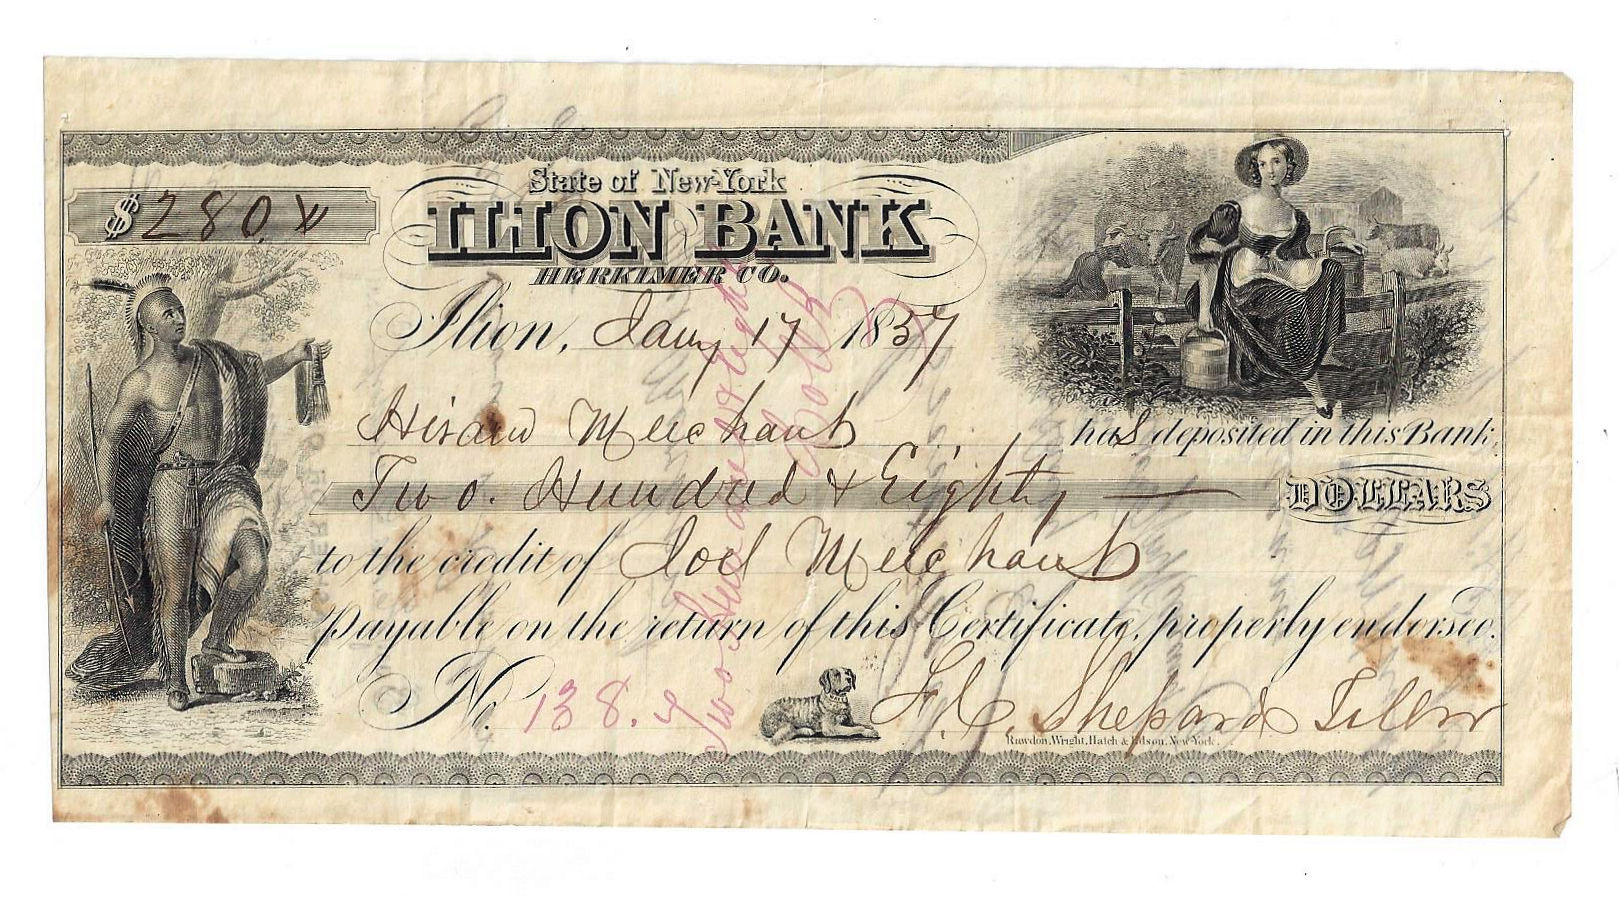 1857 State Of New York Ilion Bank 280 Certificate Of Deposit No138